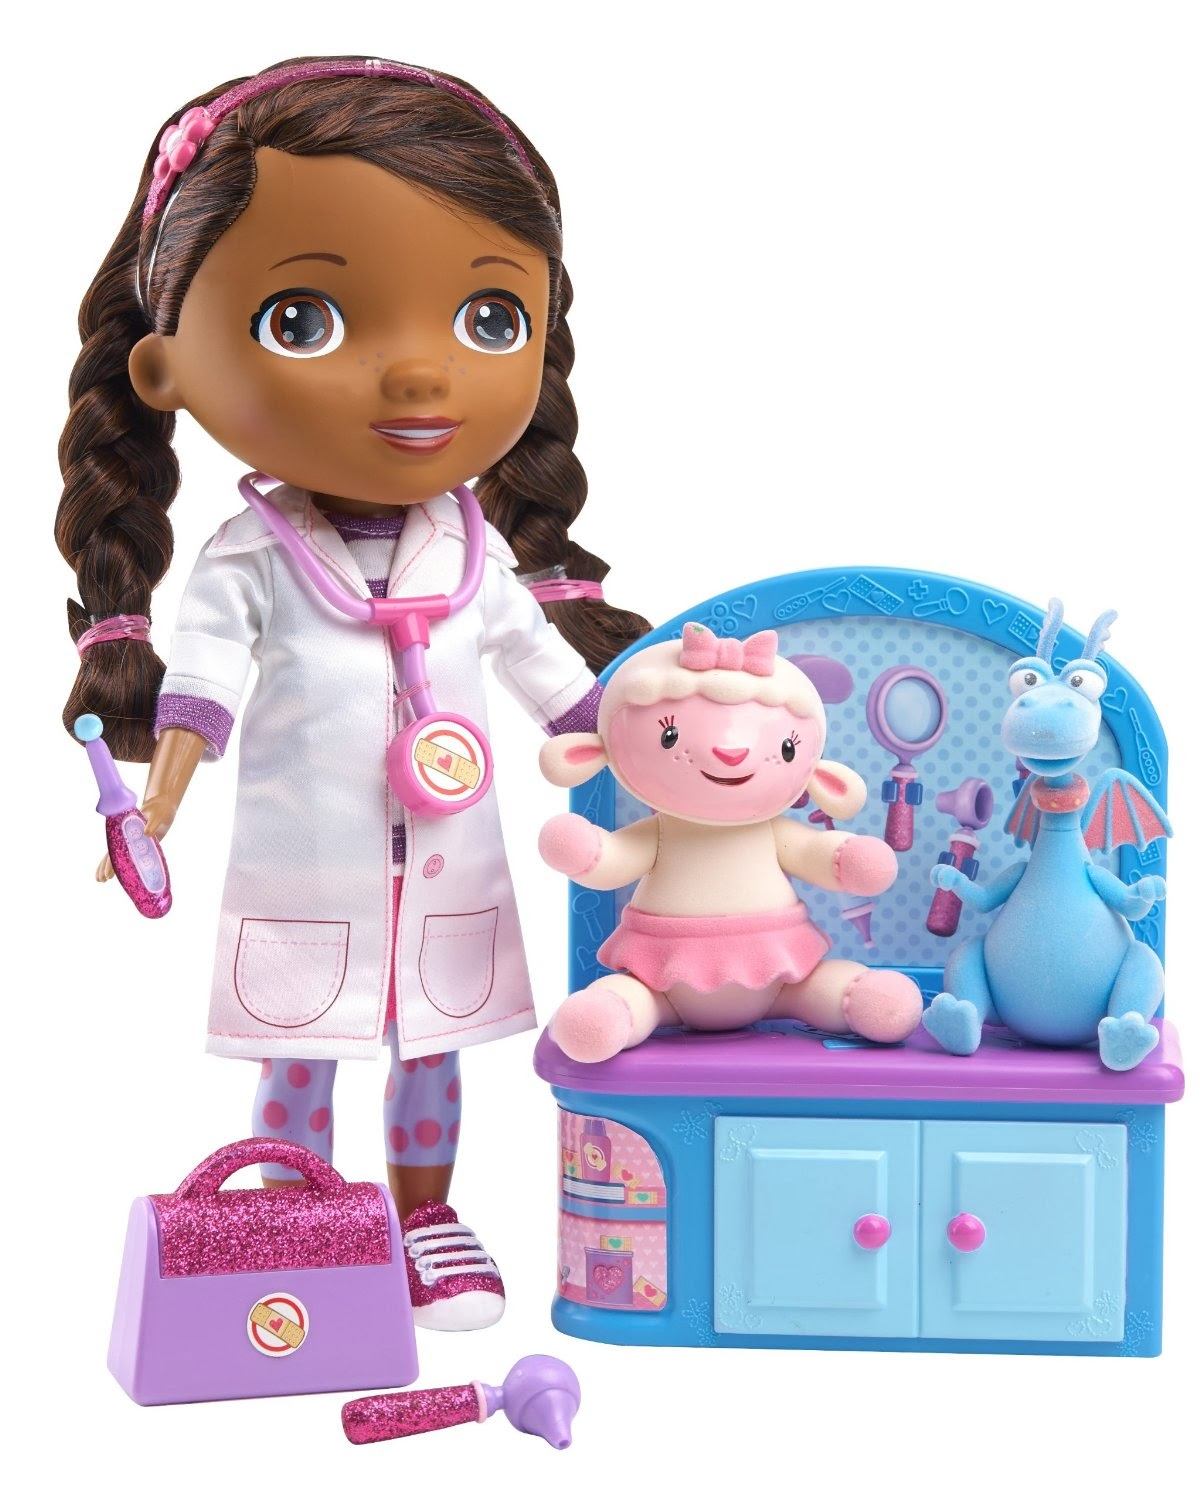 Toys And Friends : Just play toys the doc mcstuffins magic talkin